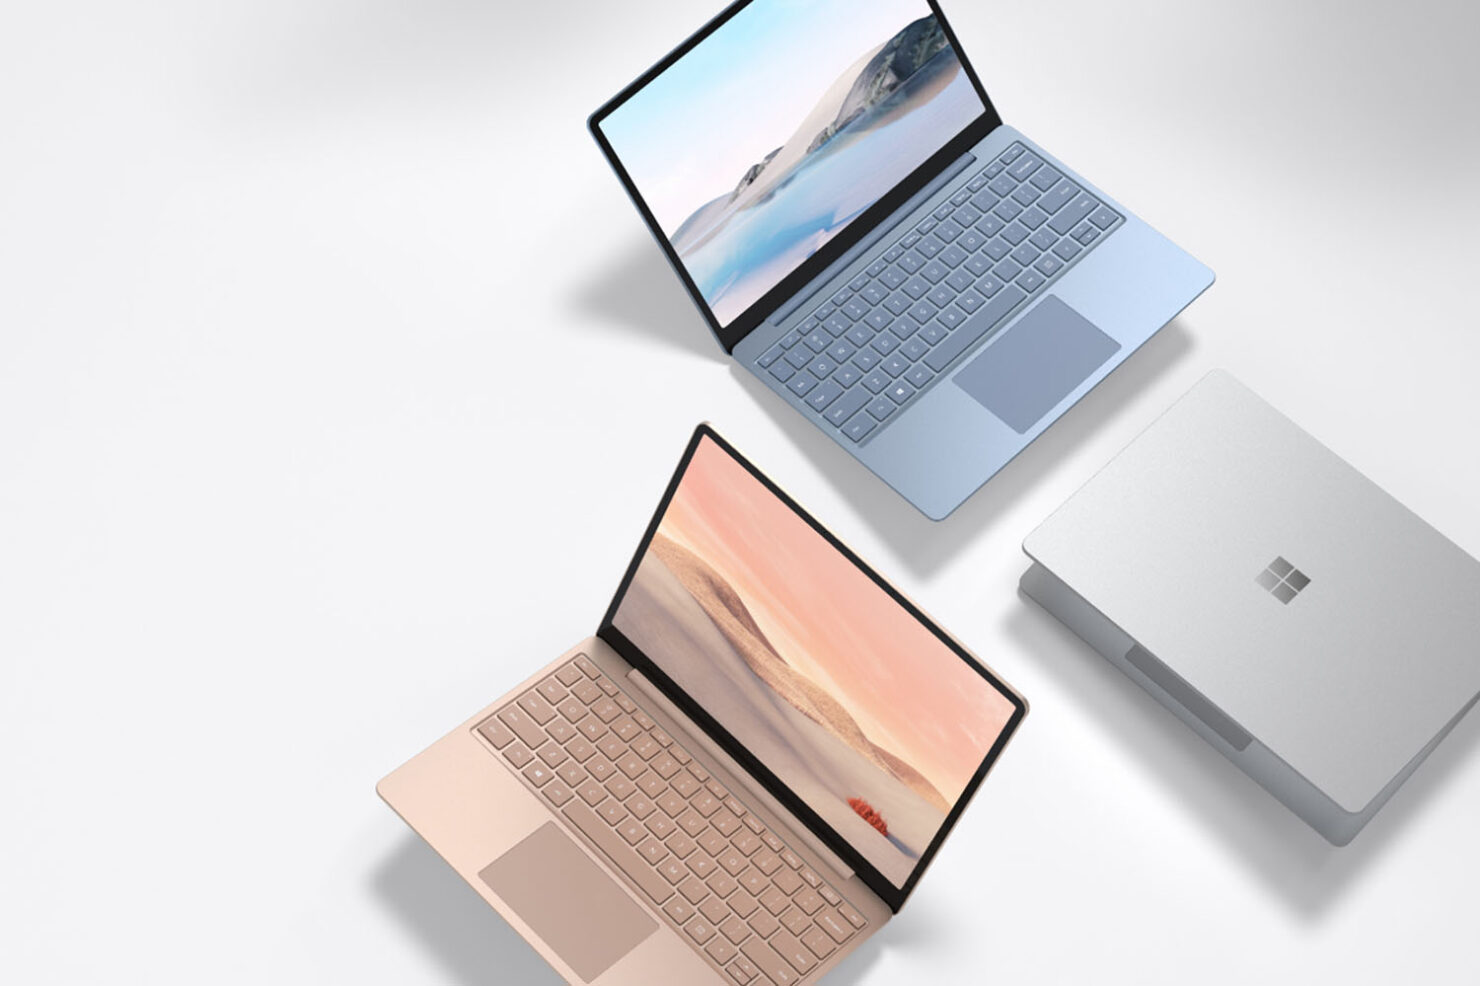 Microsoft Surface Laptop 4 With 6-Core 'Ryzen 5 3580U' CPU Spotted in New Benchmark Leak surface firmware updates